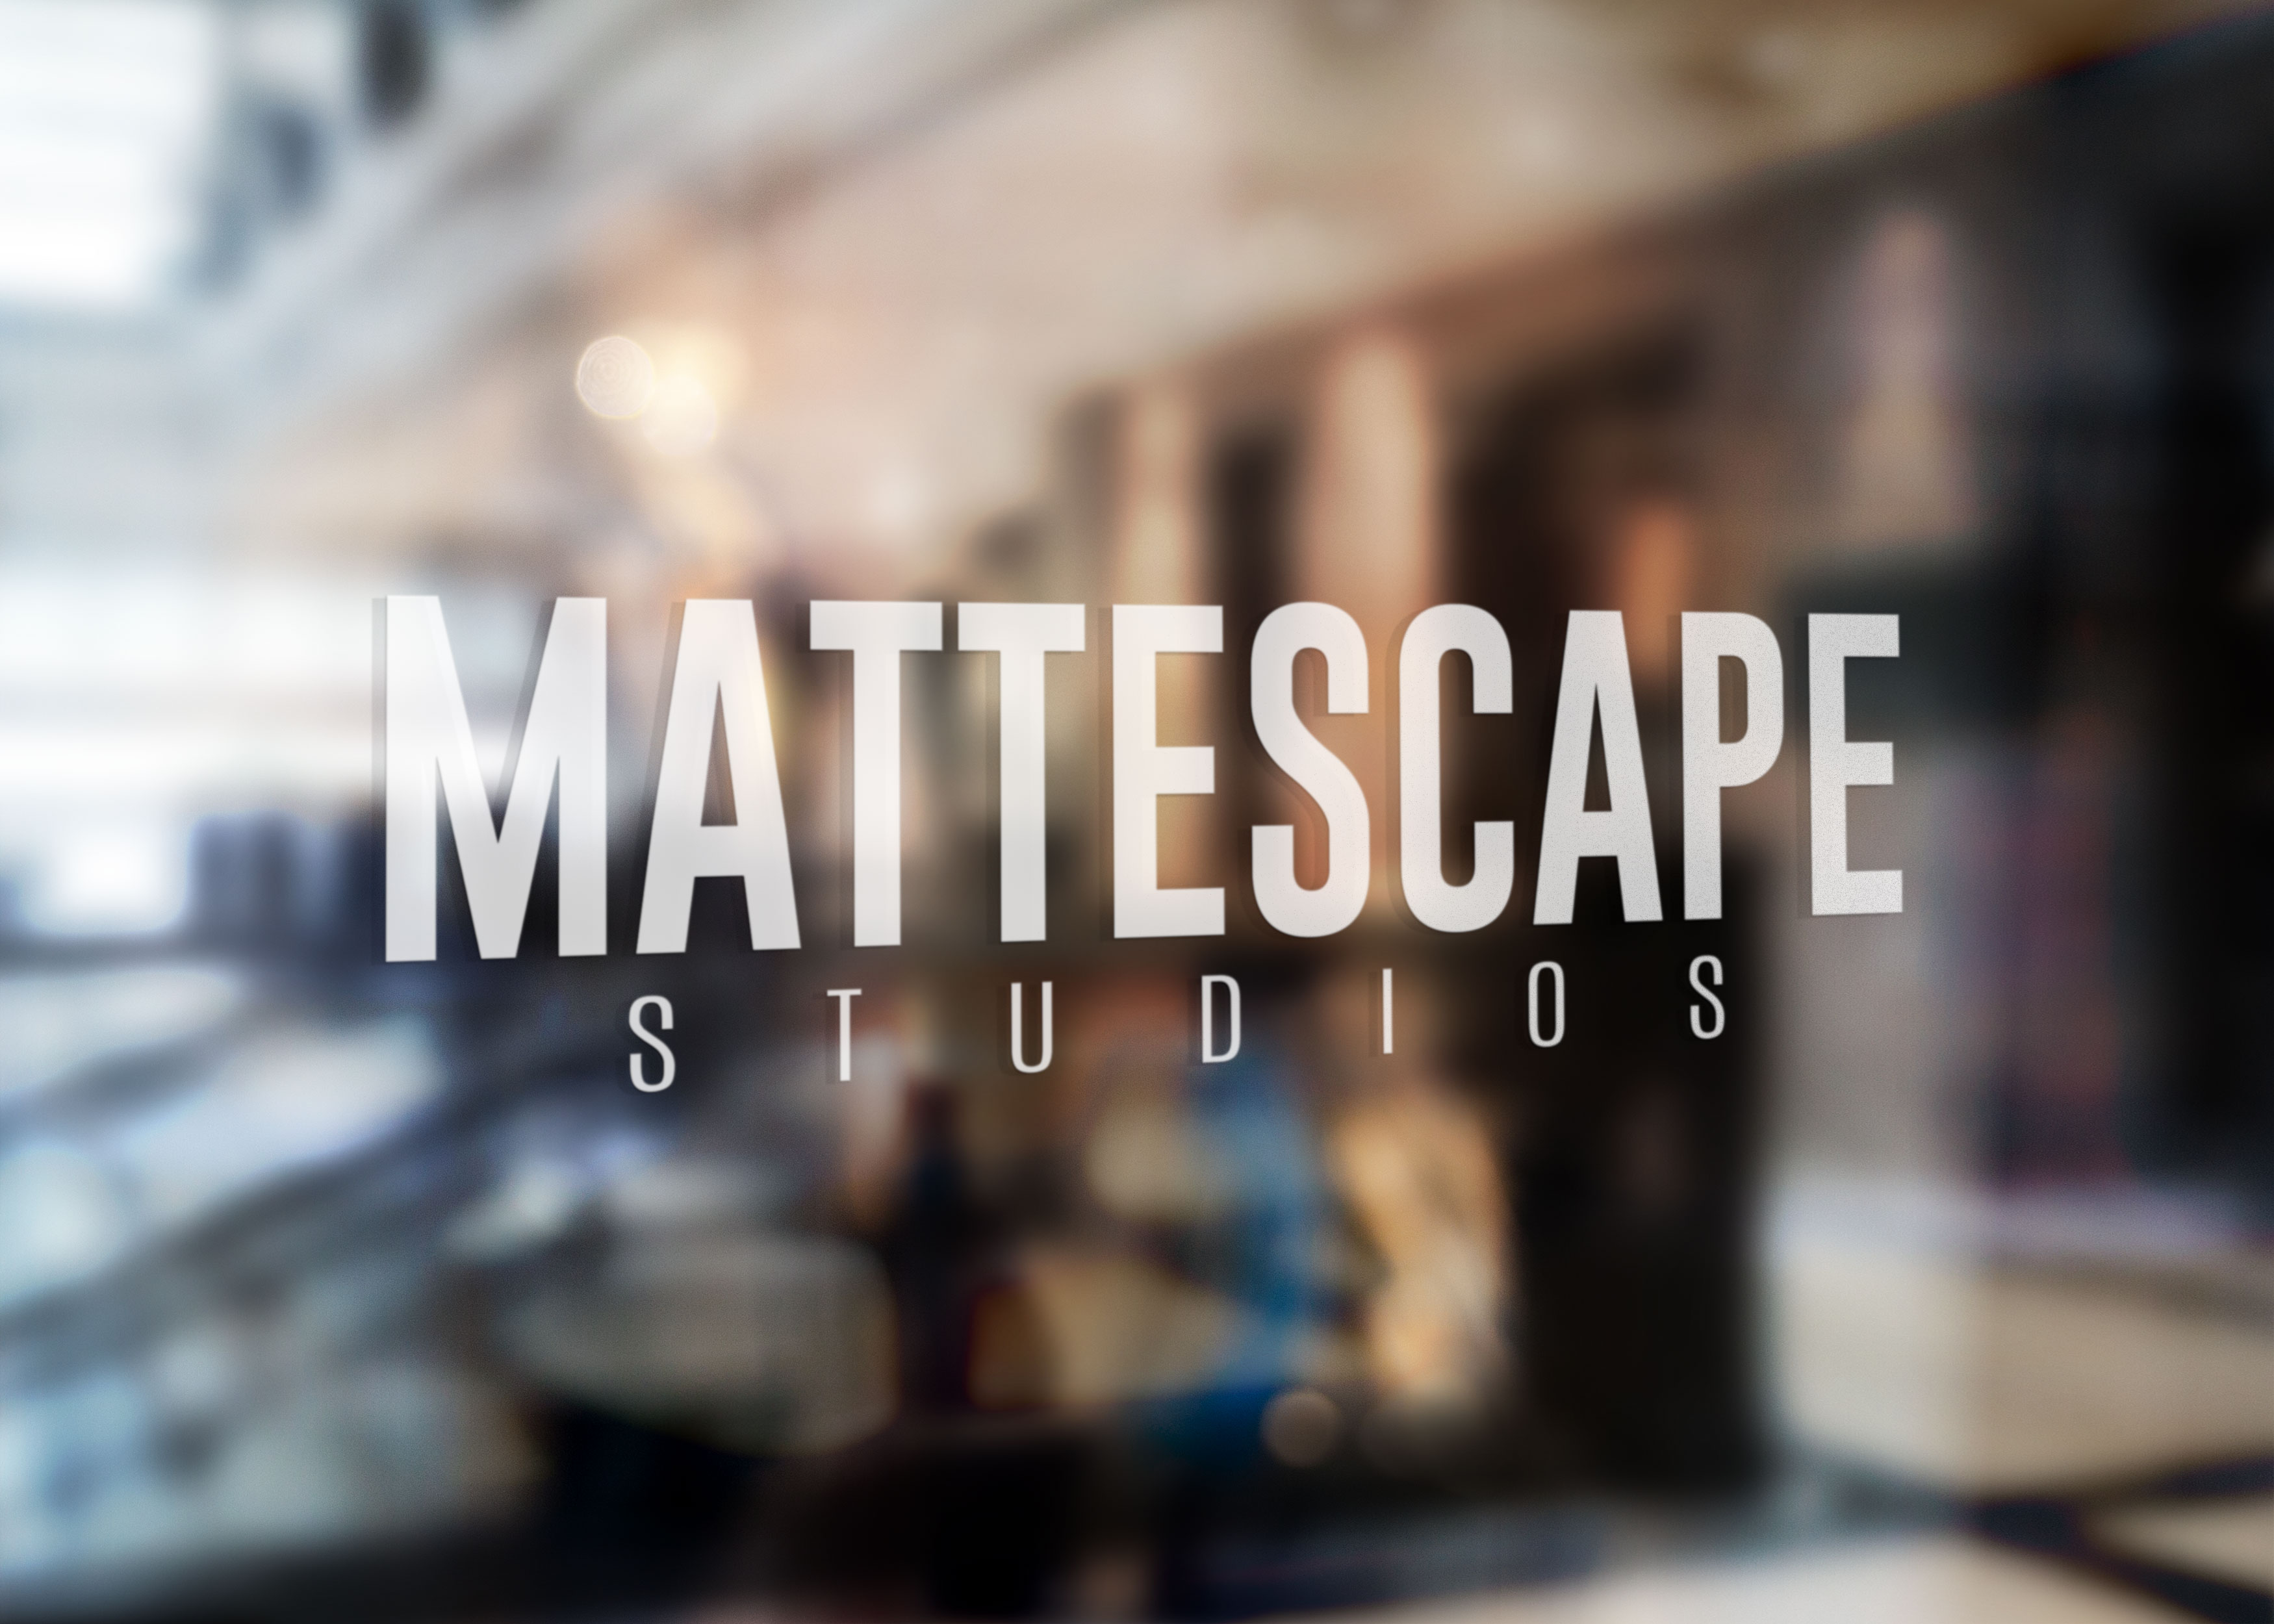 Mattescape_Window